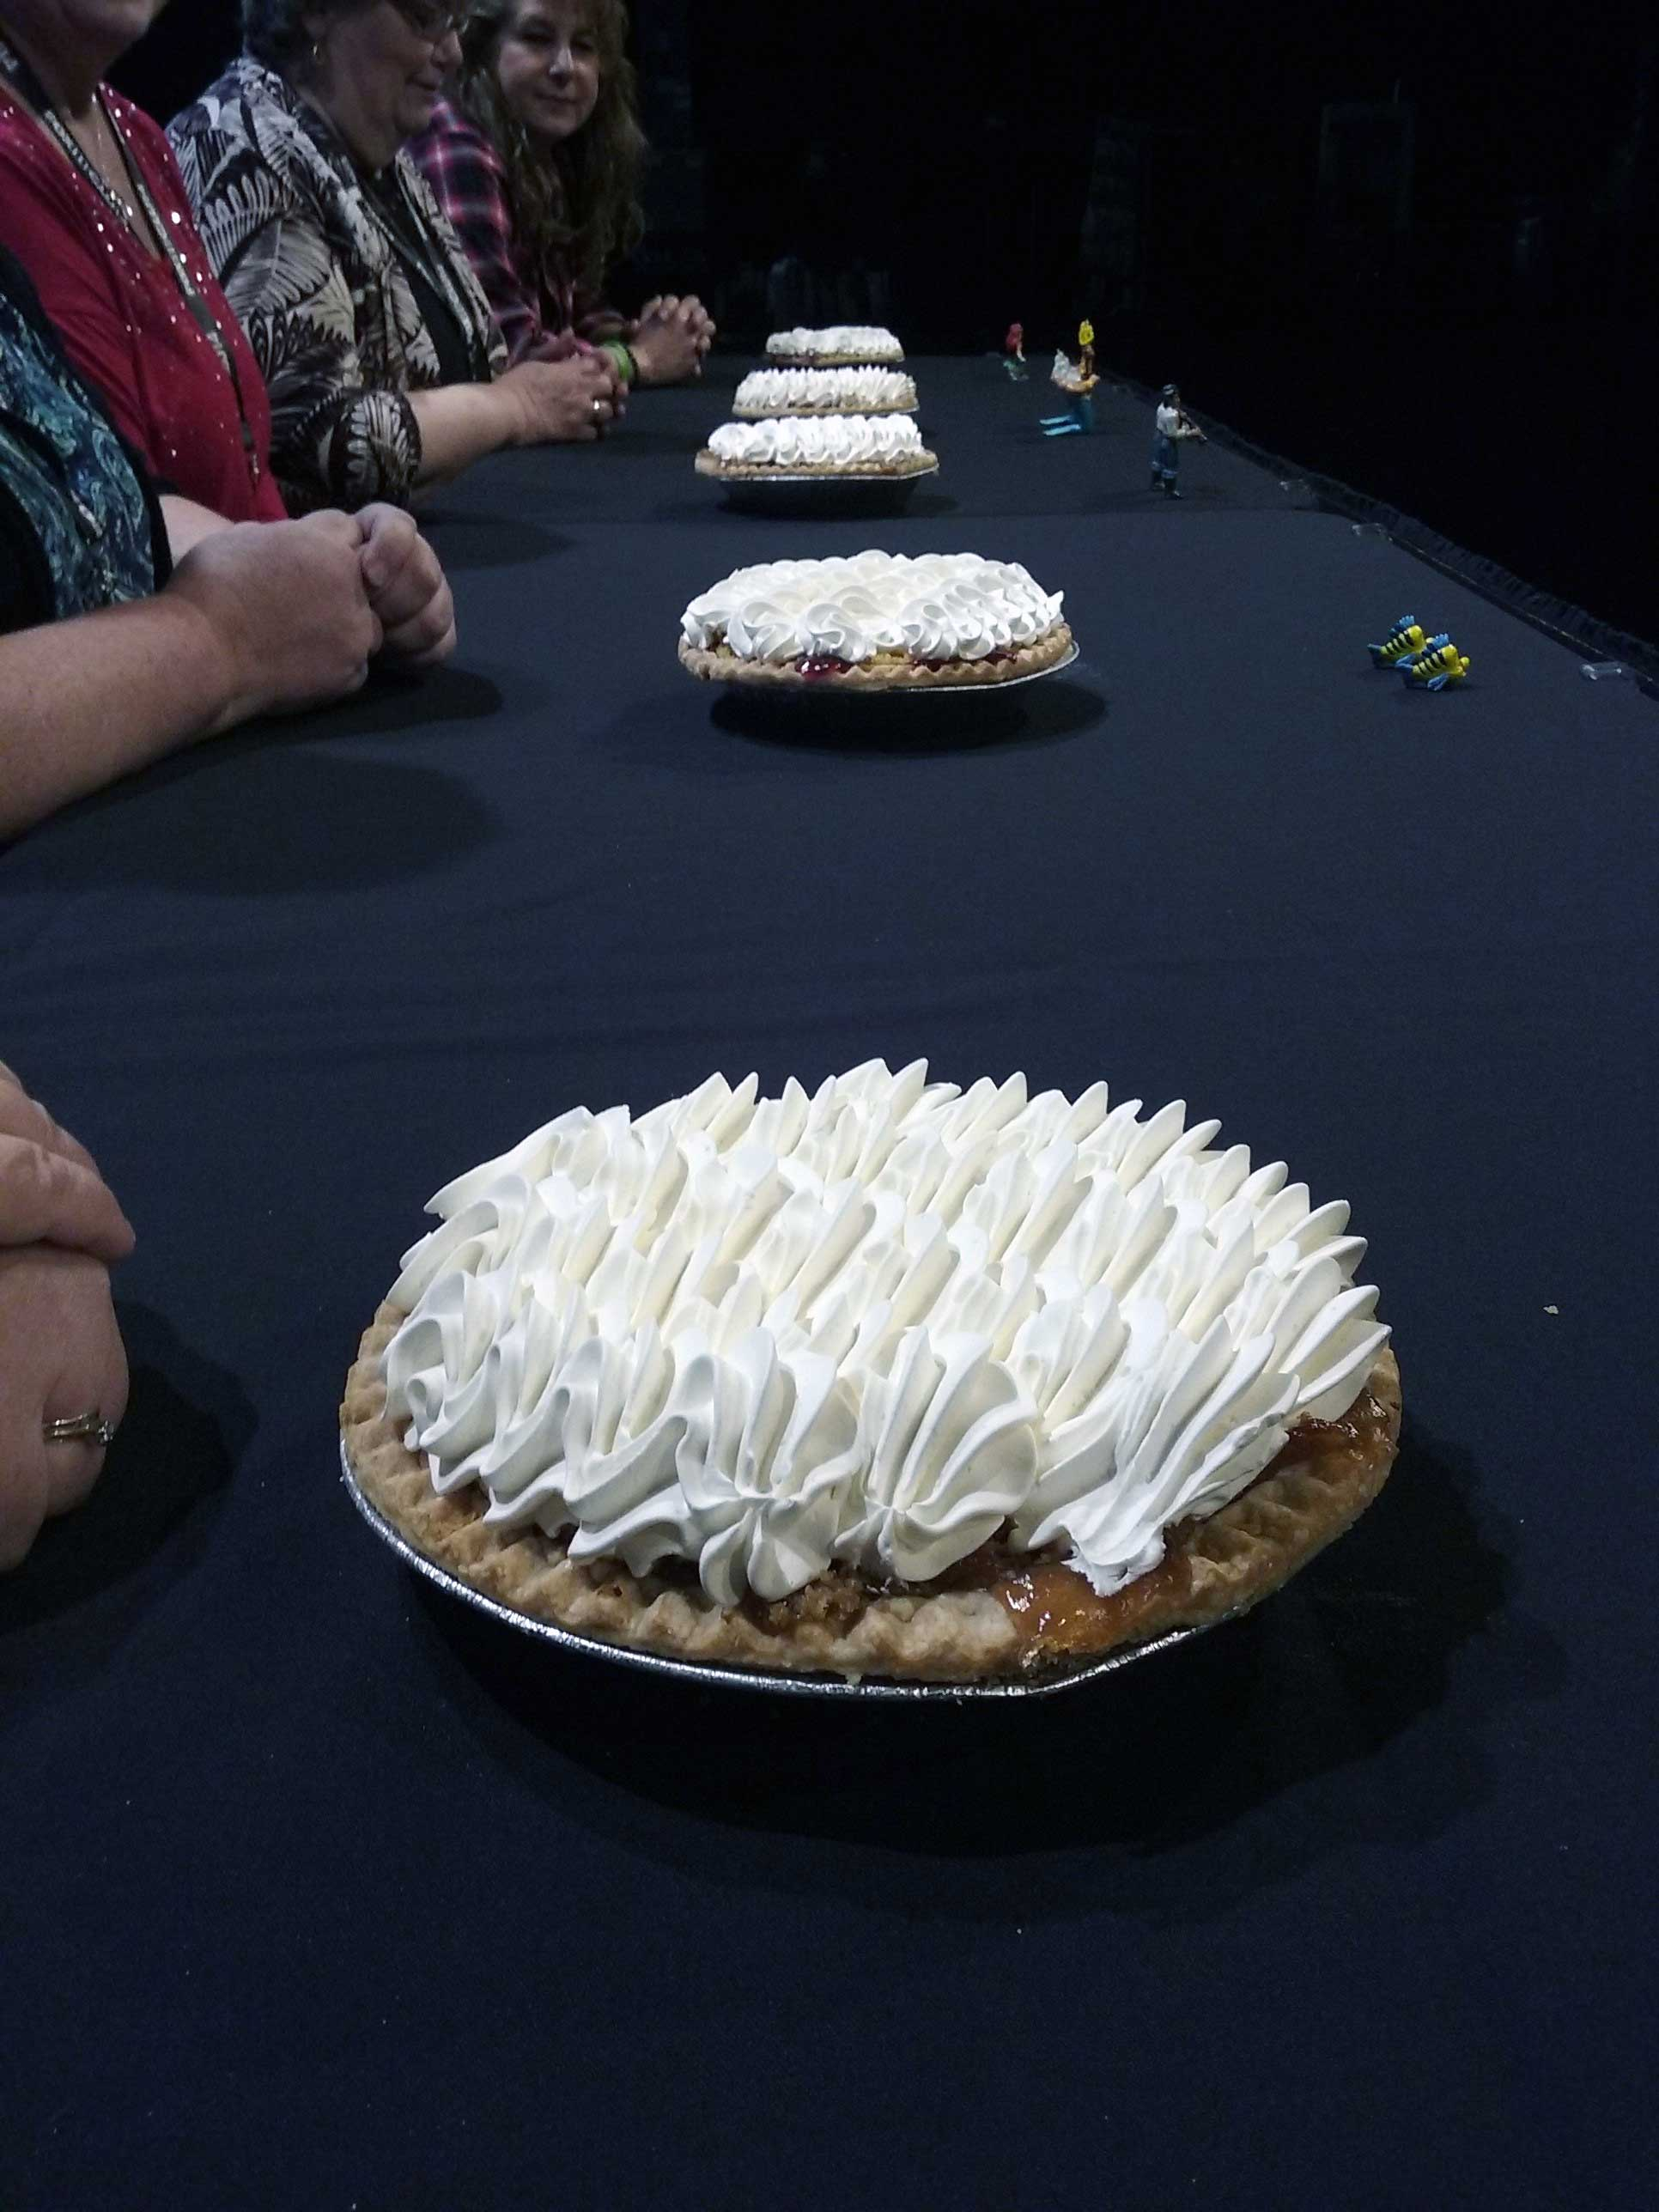 Pies sit on a table April 13, 2017, at the Fox Cities Performing Arts Center in Appleton. One of the pies contains the winning ticket for the Good Day Wisconsin Broadway Nights contest hidden inside. (WLUK/Kimberly Krejcarek)